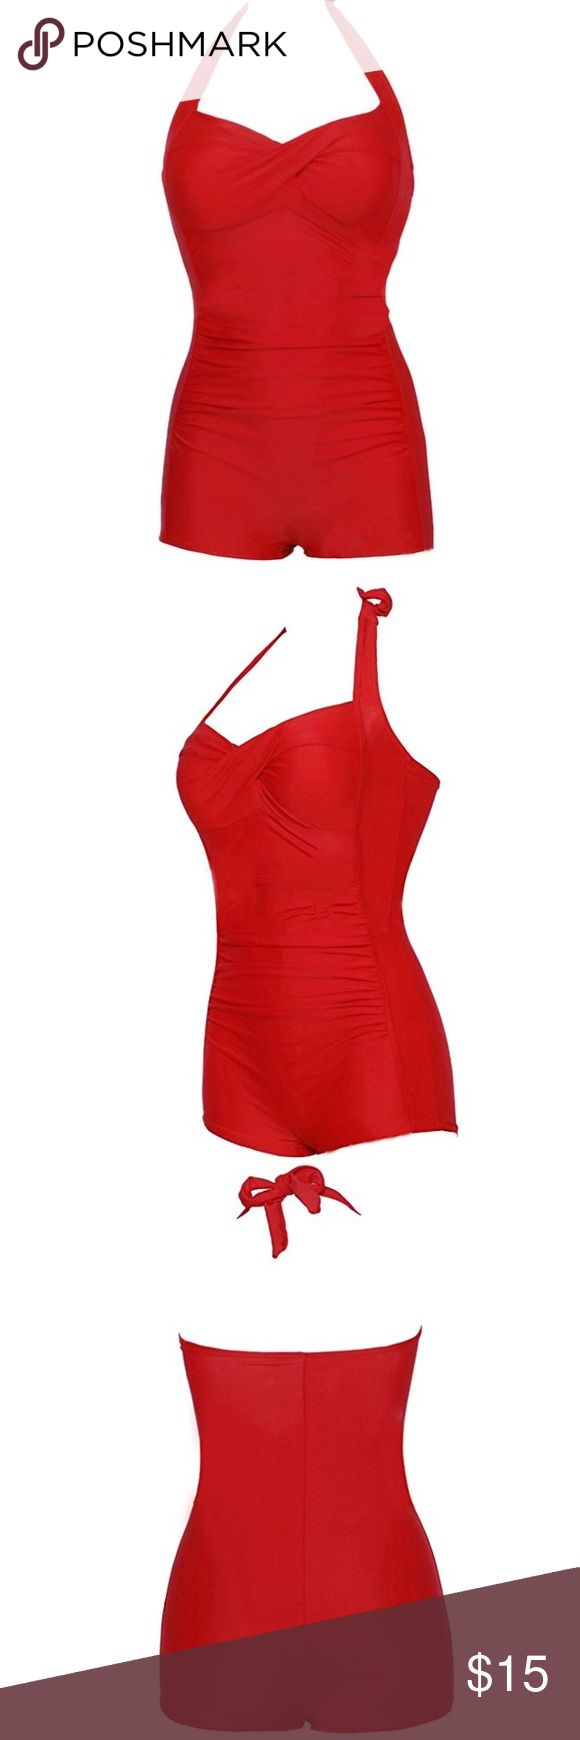 Retro red one piece Perfectly functional swimsuit, worn only once as a Halloween costume! My husband and I were Squints and Wendy Peffercorn. Size medium fit perfectly. Clean and mint condition. Use for your own costume or be a fabulous throwback on the beach with a floppy hat and some red lipstick  Swim One Pieces